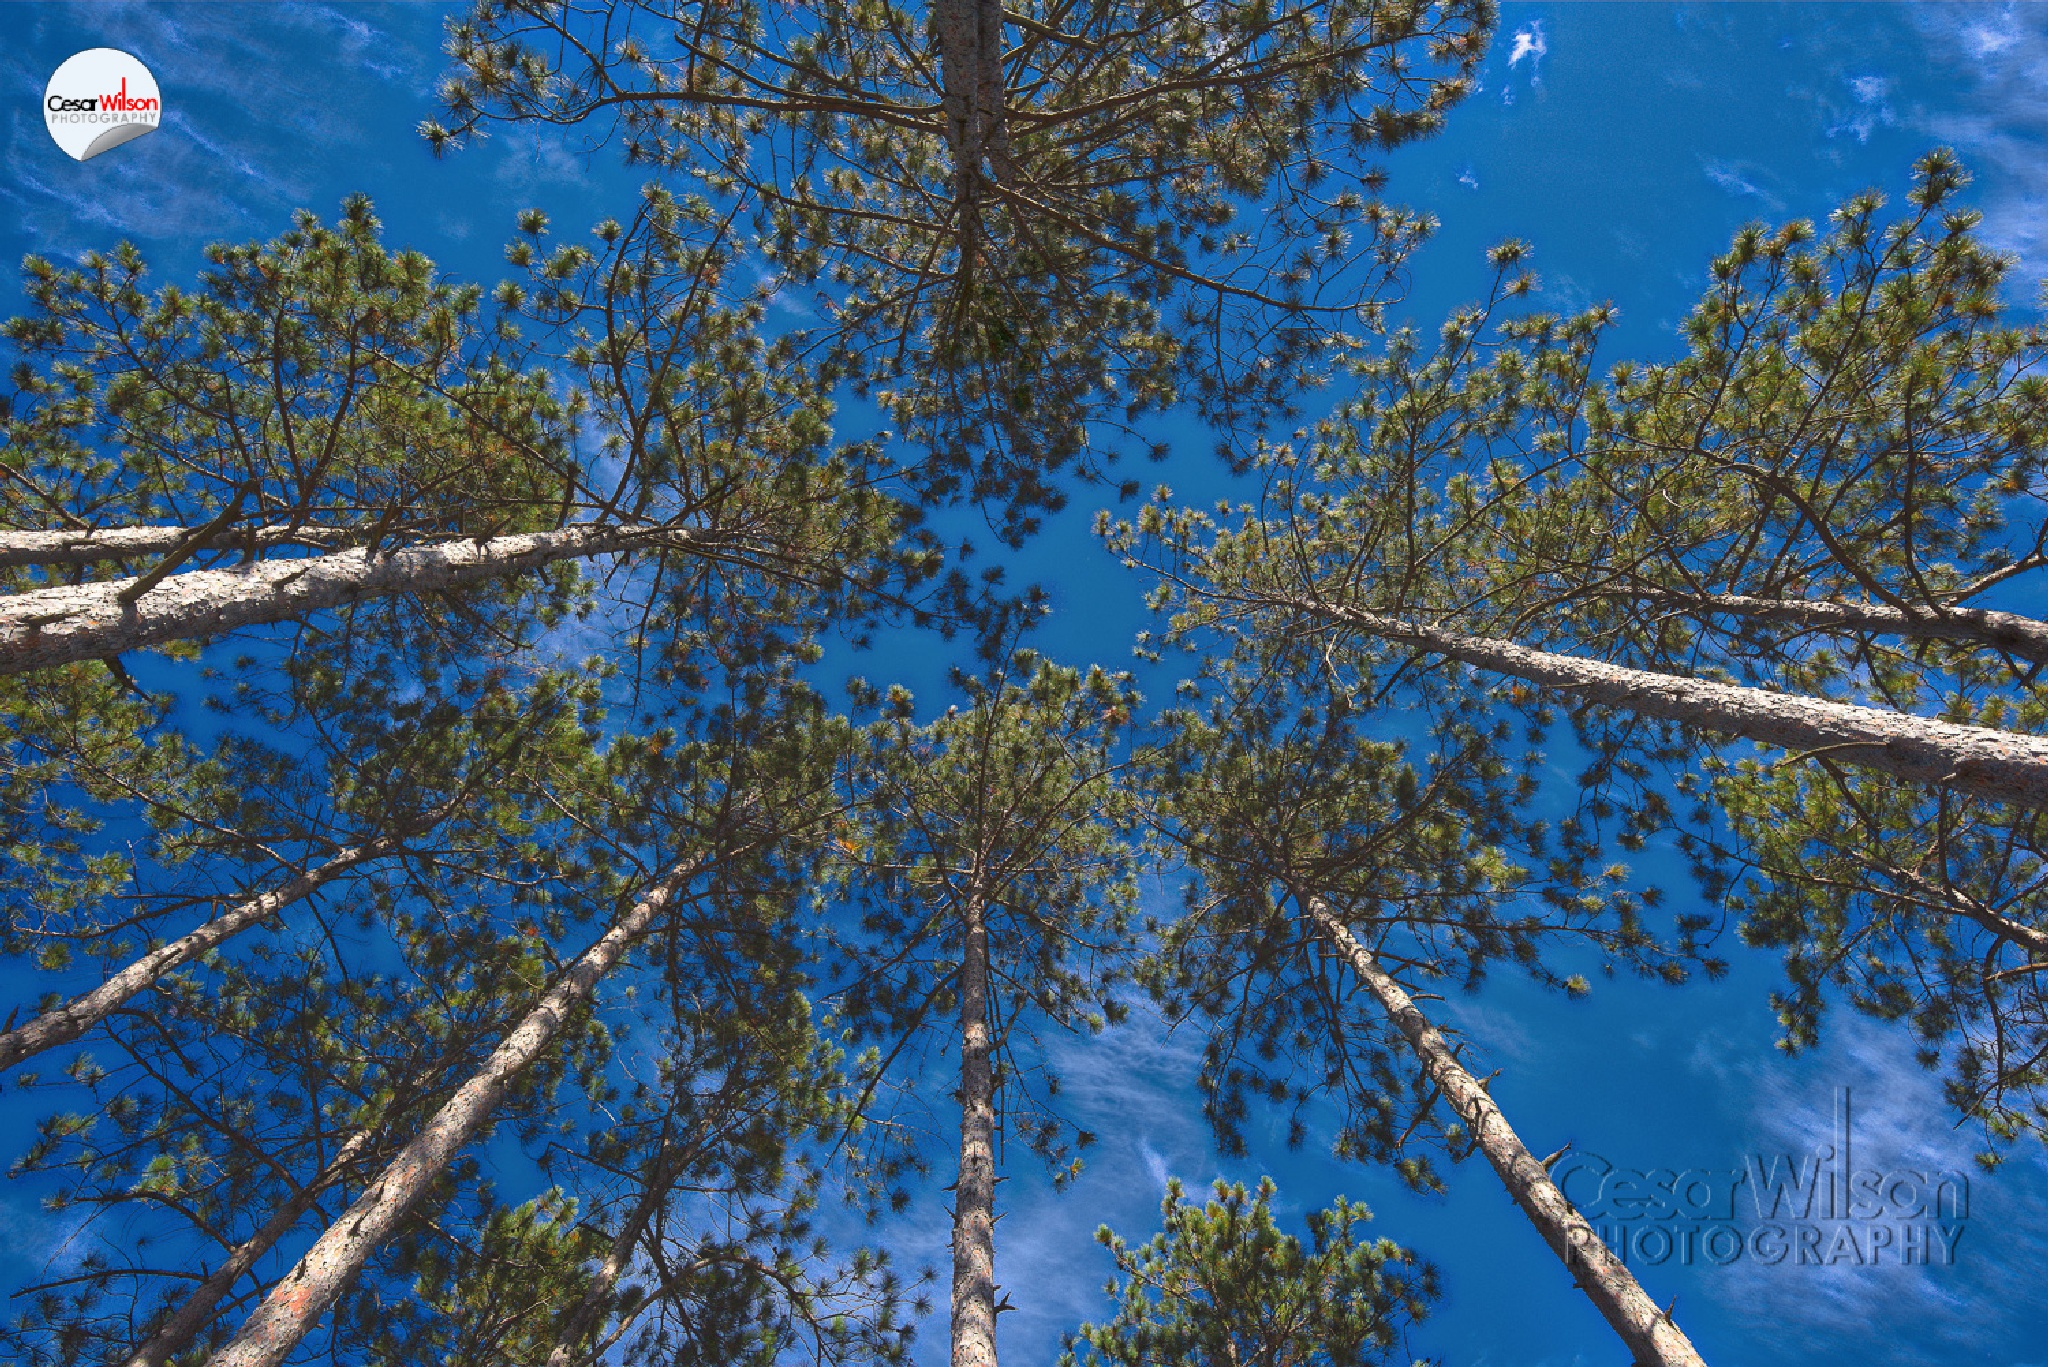 Look up nature by Cesar Wilson